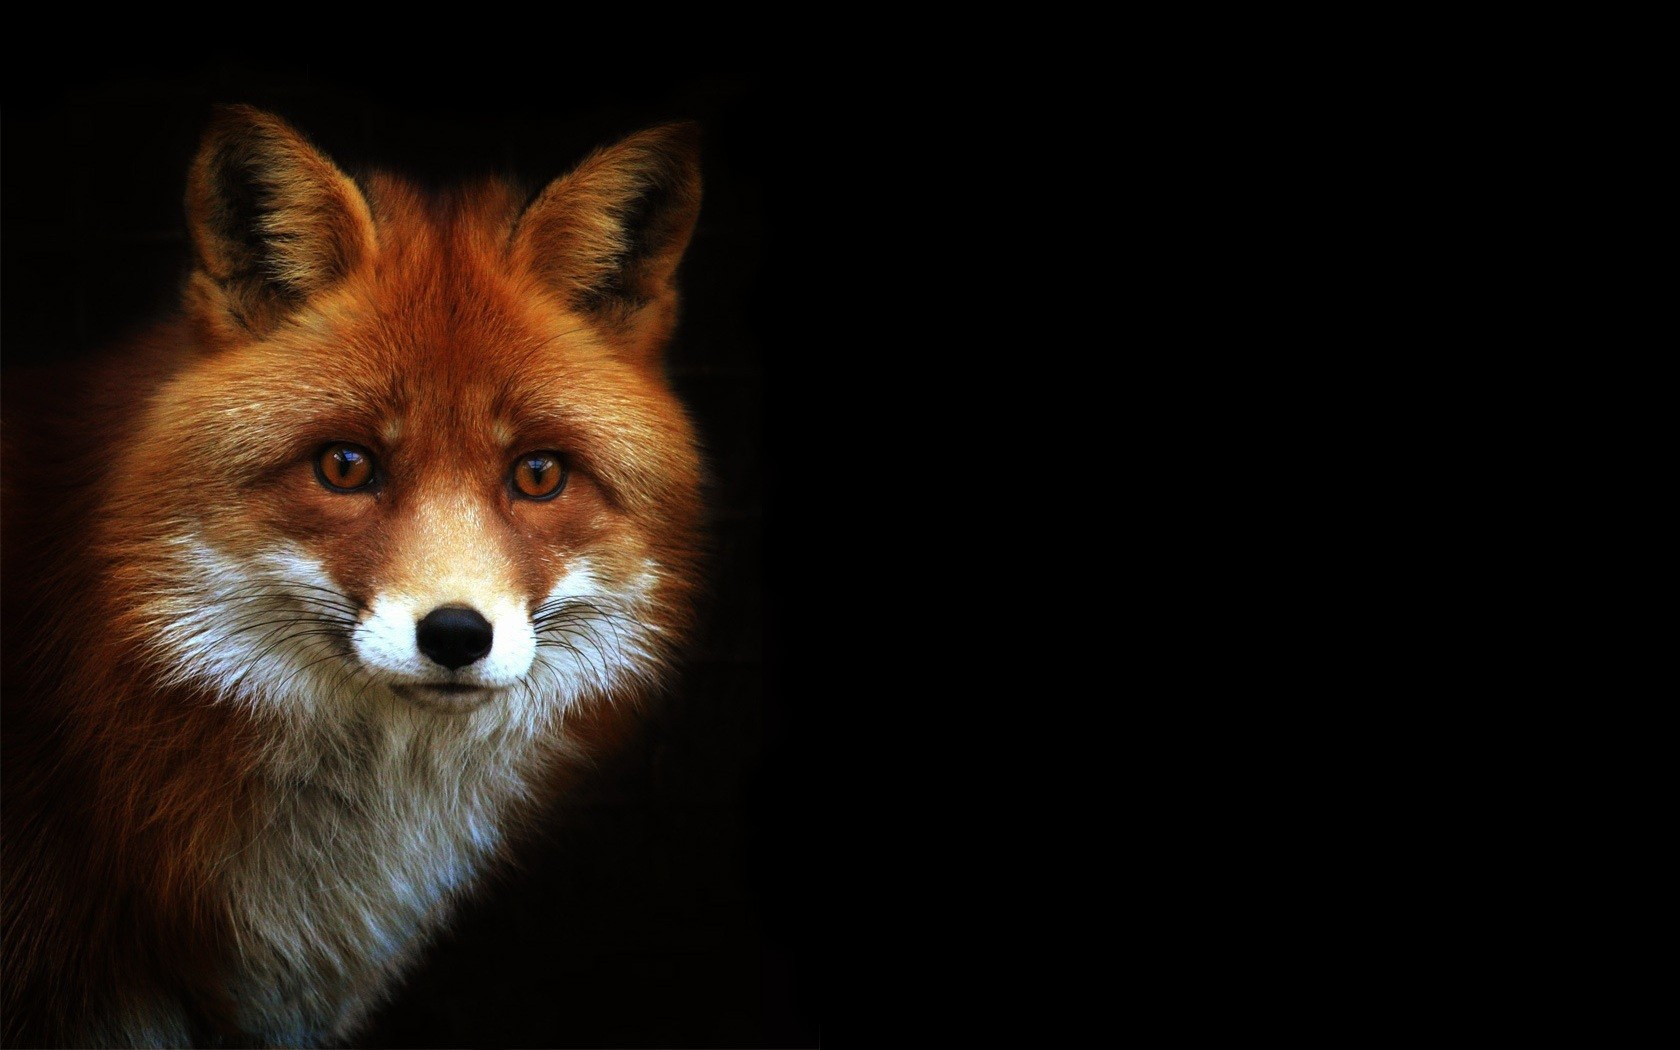 Red Fox on a black background wallpapers and images   wallpapers 1680x1050